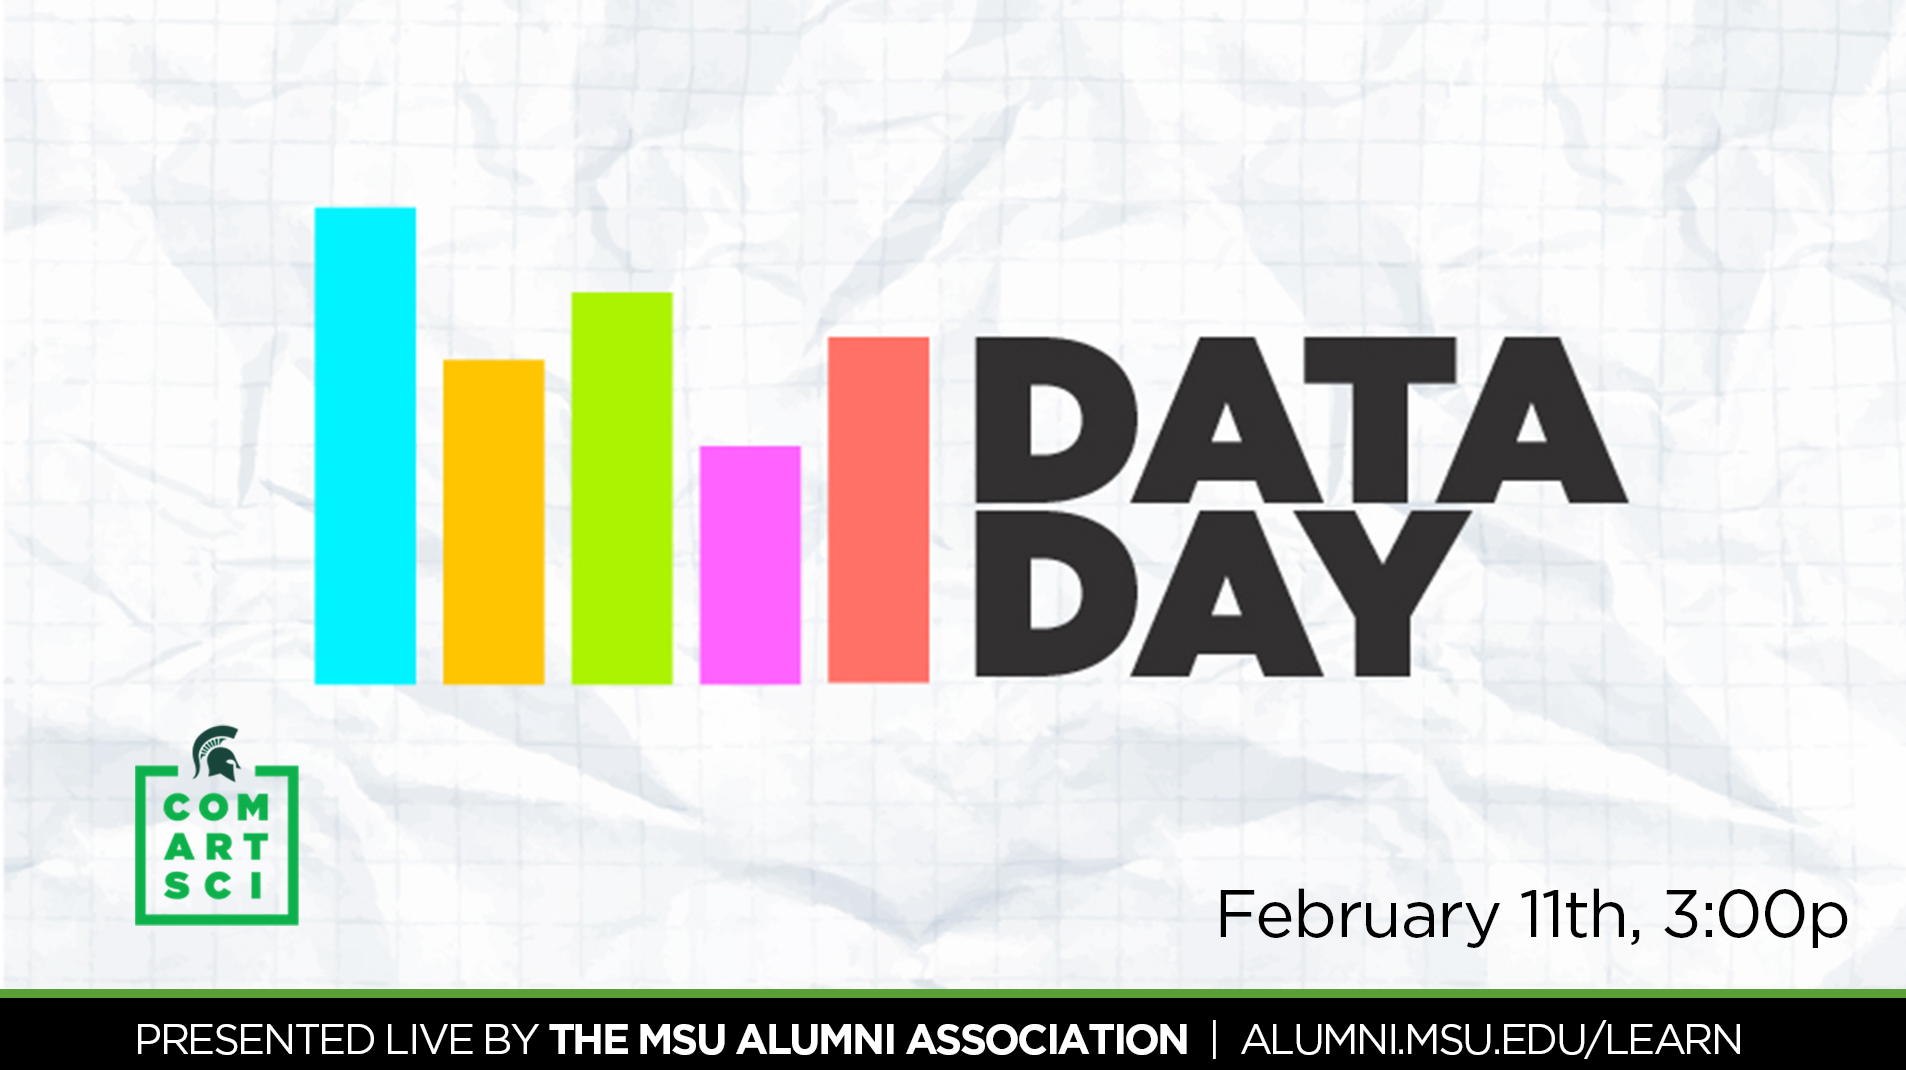 livestream cover image for ComArtSci Data Day 2019